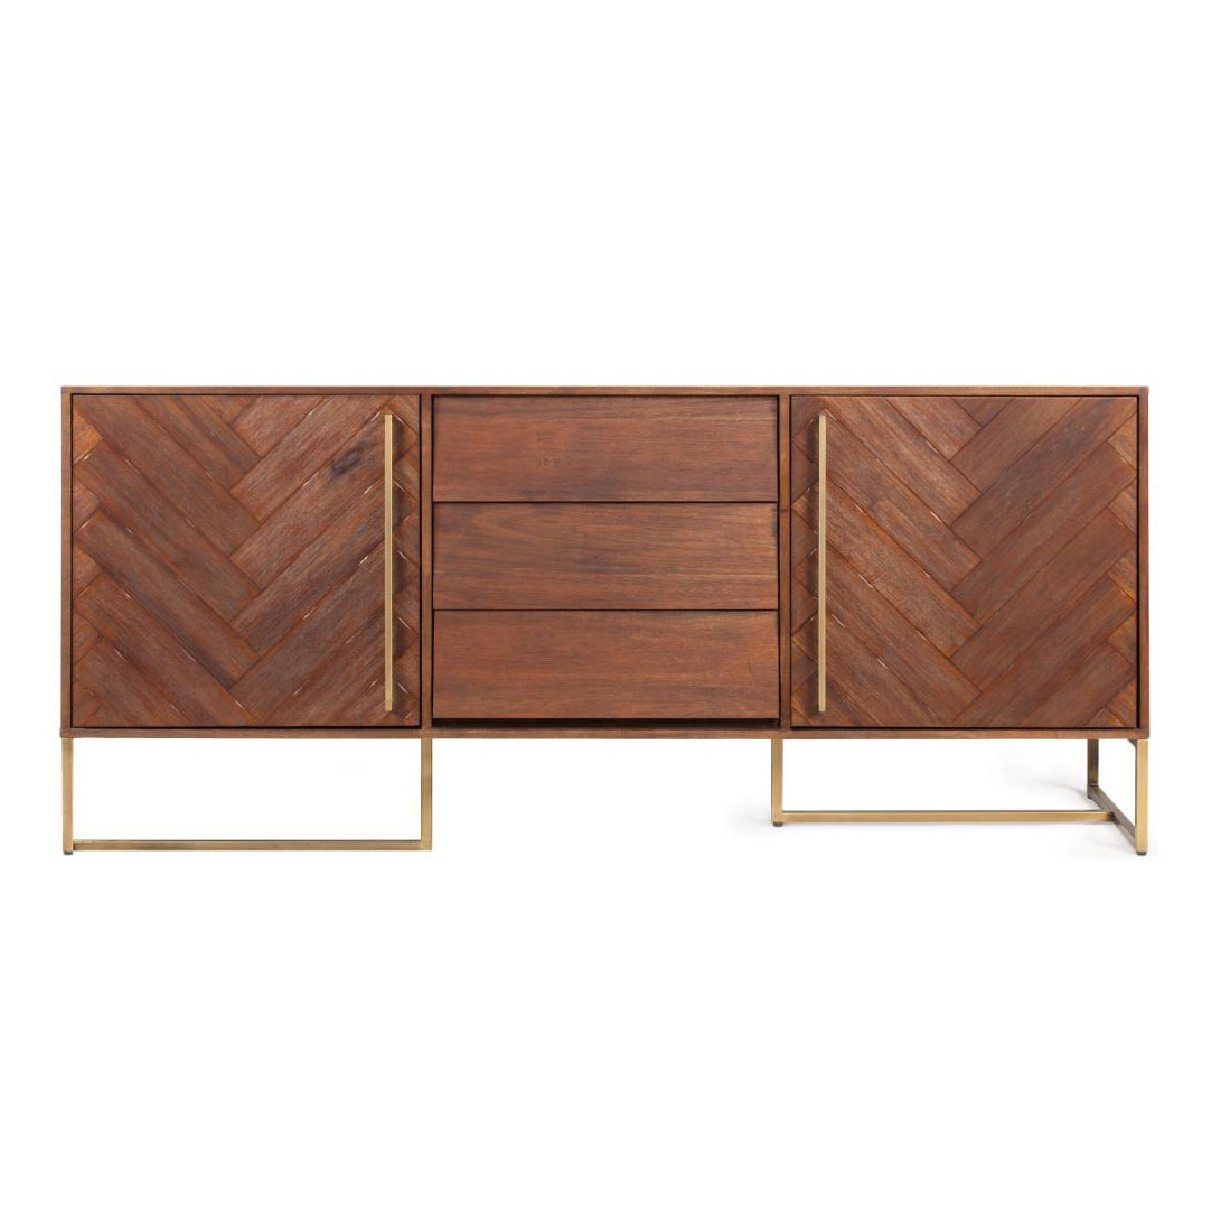 sideboard|Decoration cabinet|Wall cabinet